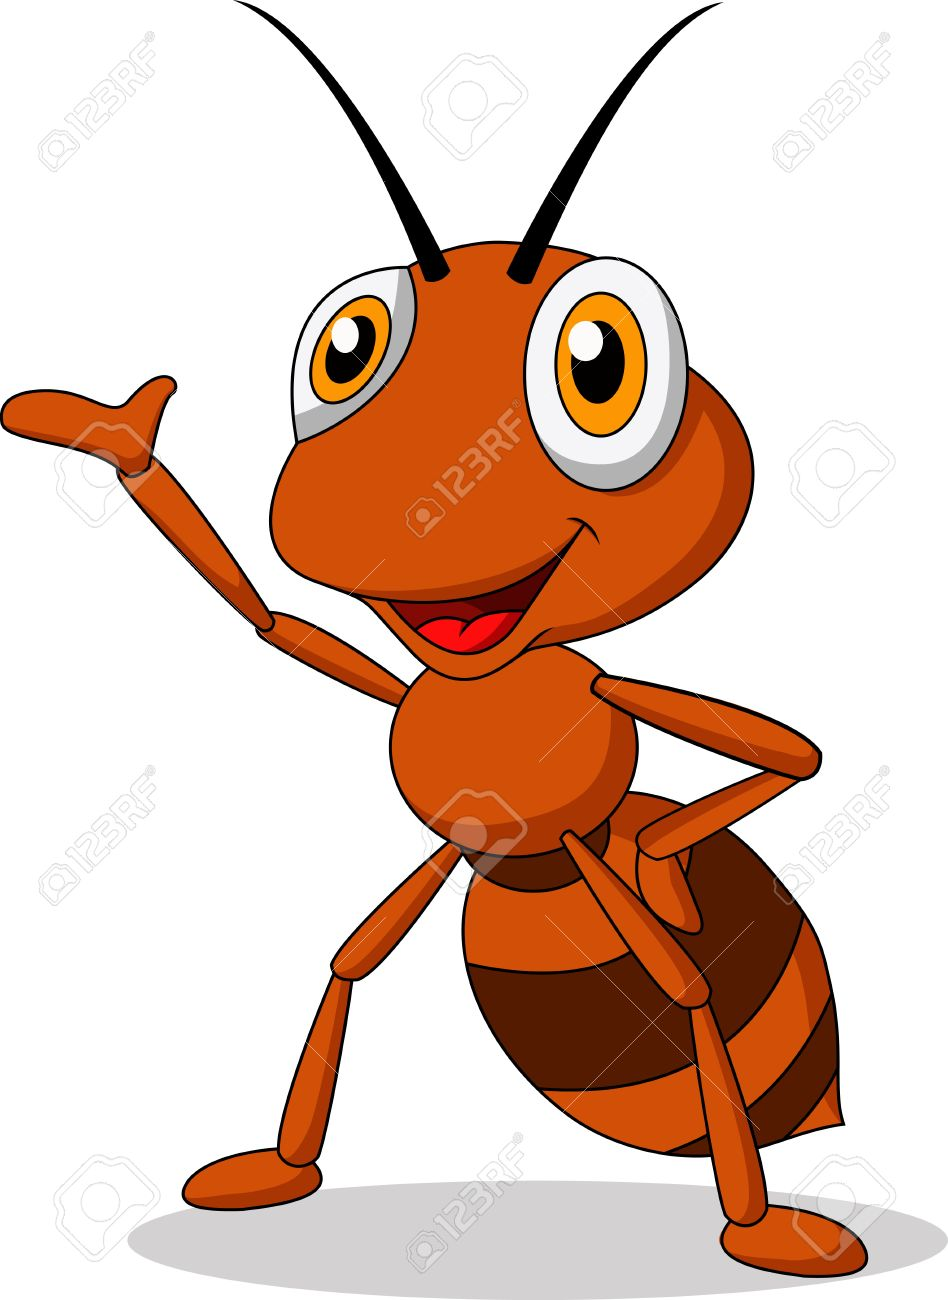 948x1300 Ants Clipart Small Animal